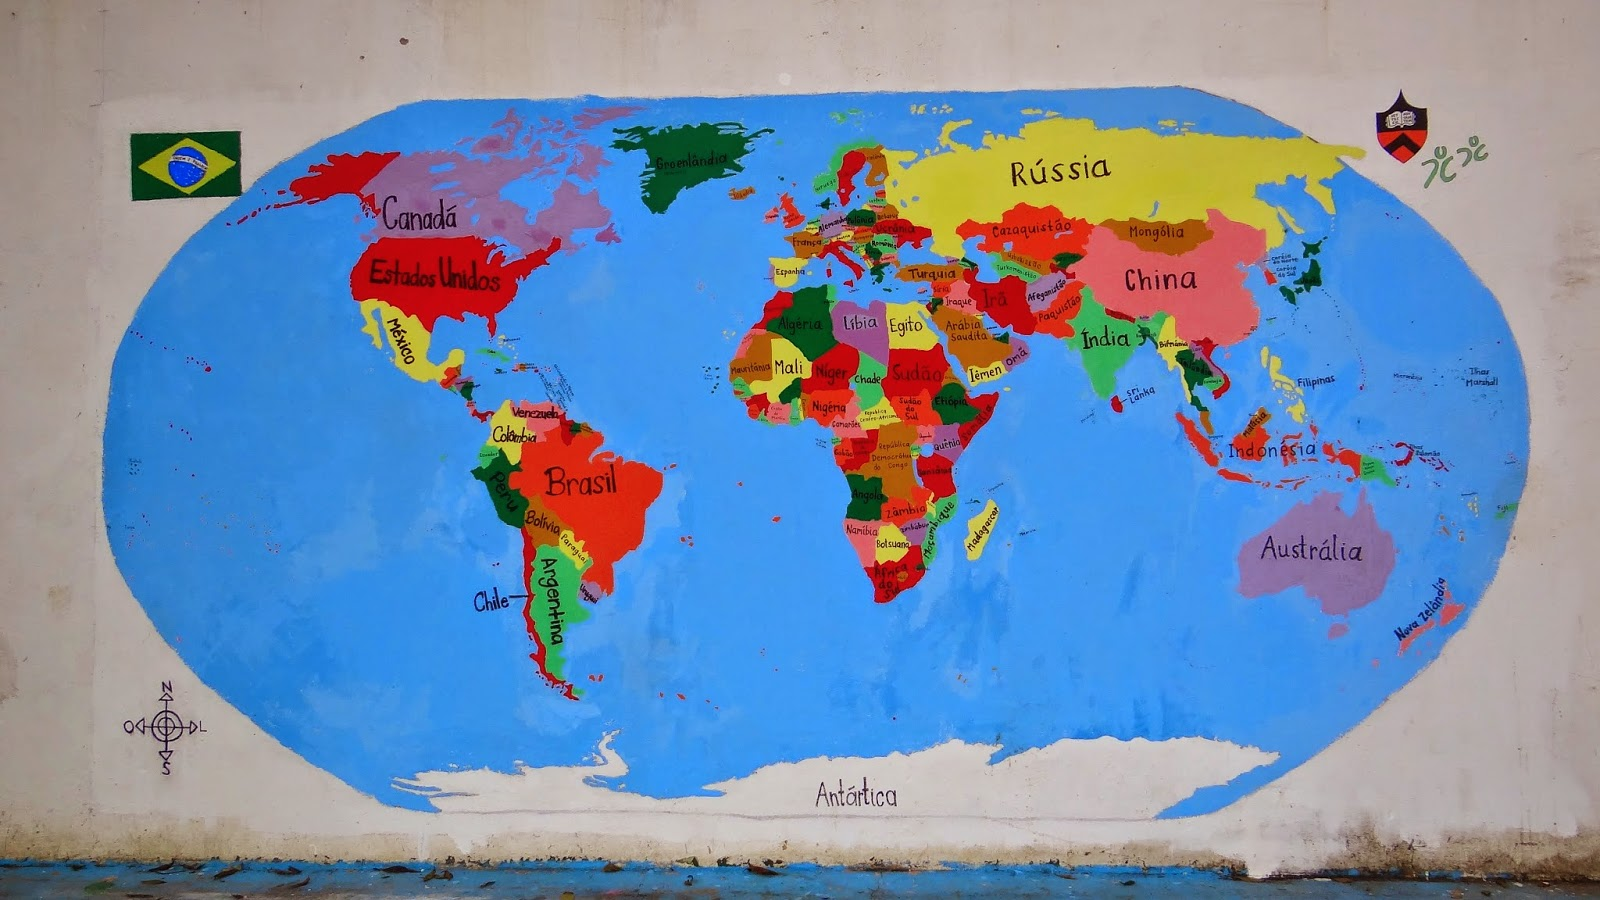 Weve got the whole world in our hands mural photos saudaes beginning in february we decided to do the peace corpss world map project at one of our service sites an orphanage we thought the kids would really publicscrutiny Image collections